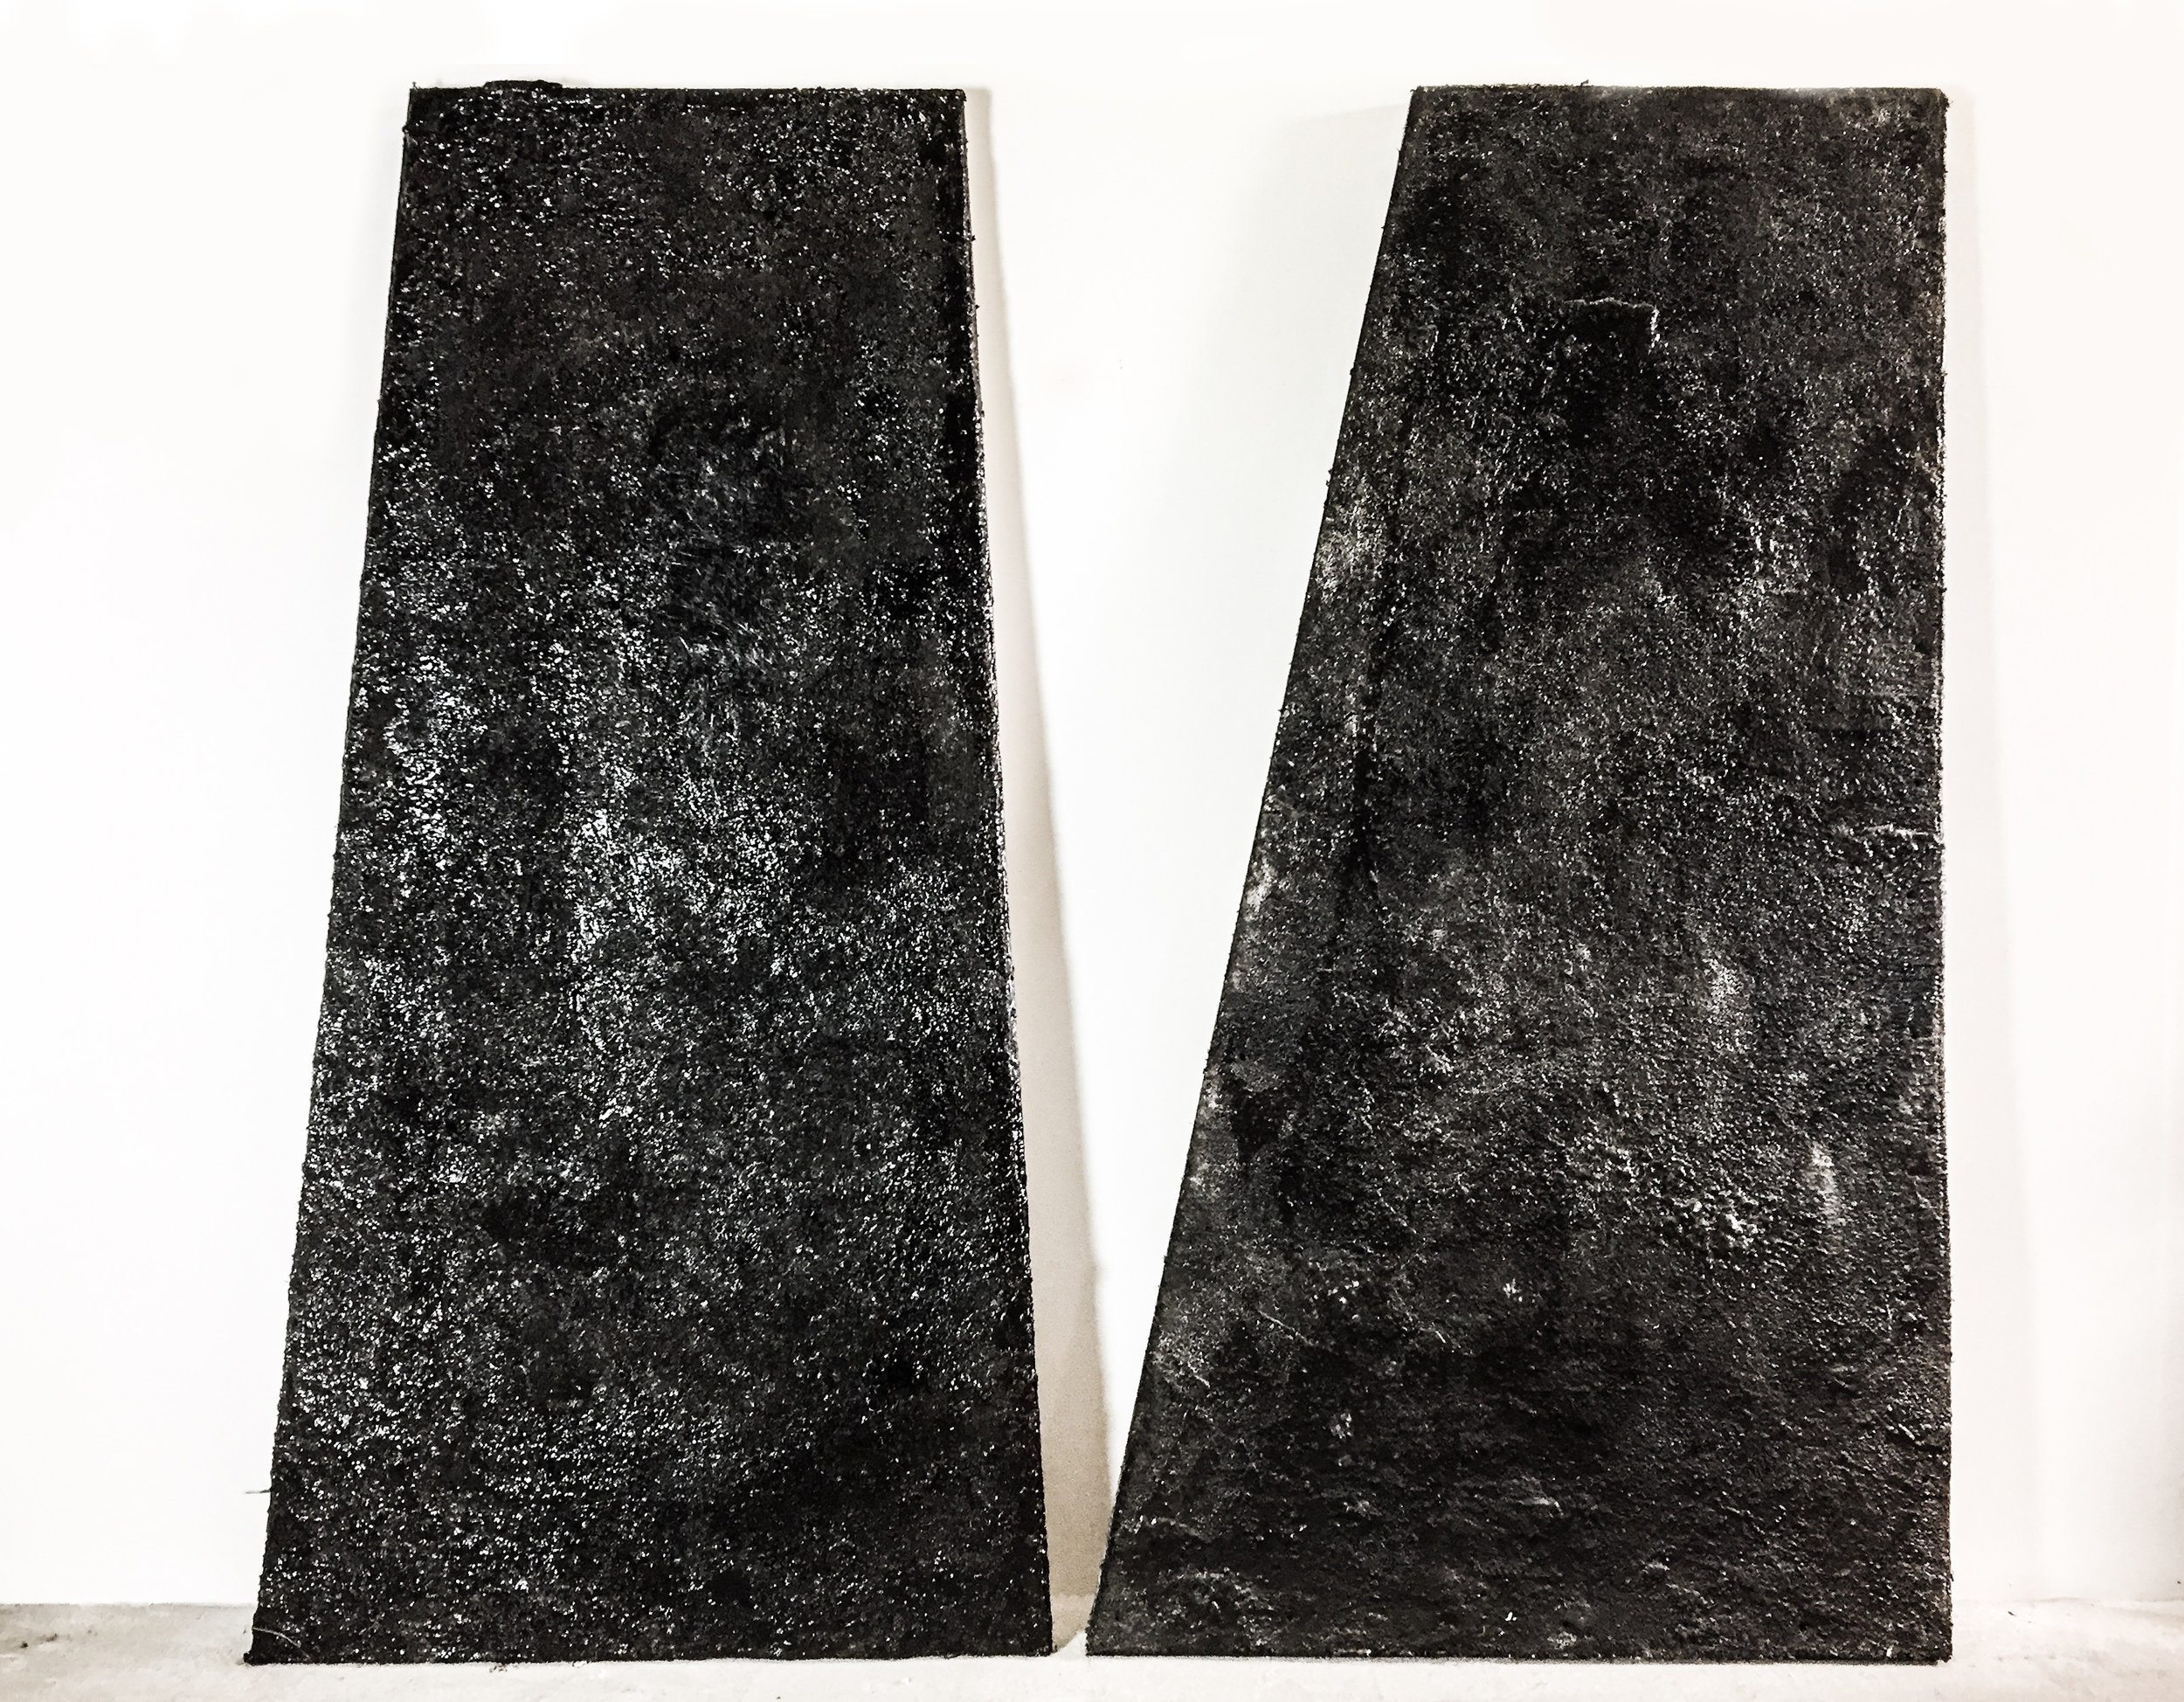 MONUMENT IV (DIPTYCH)